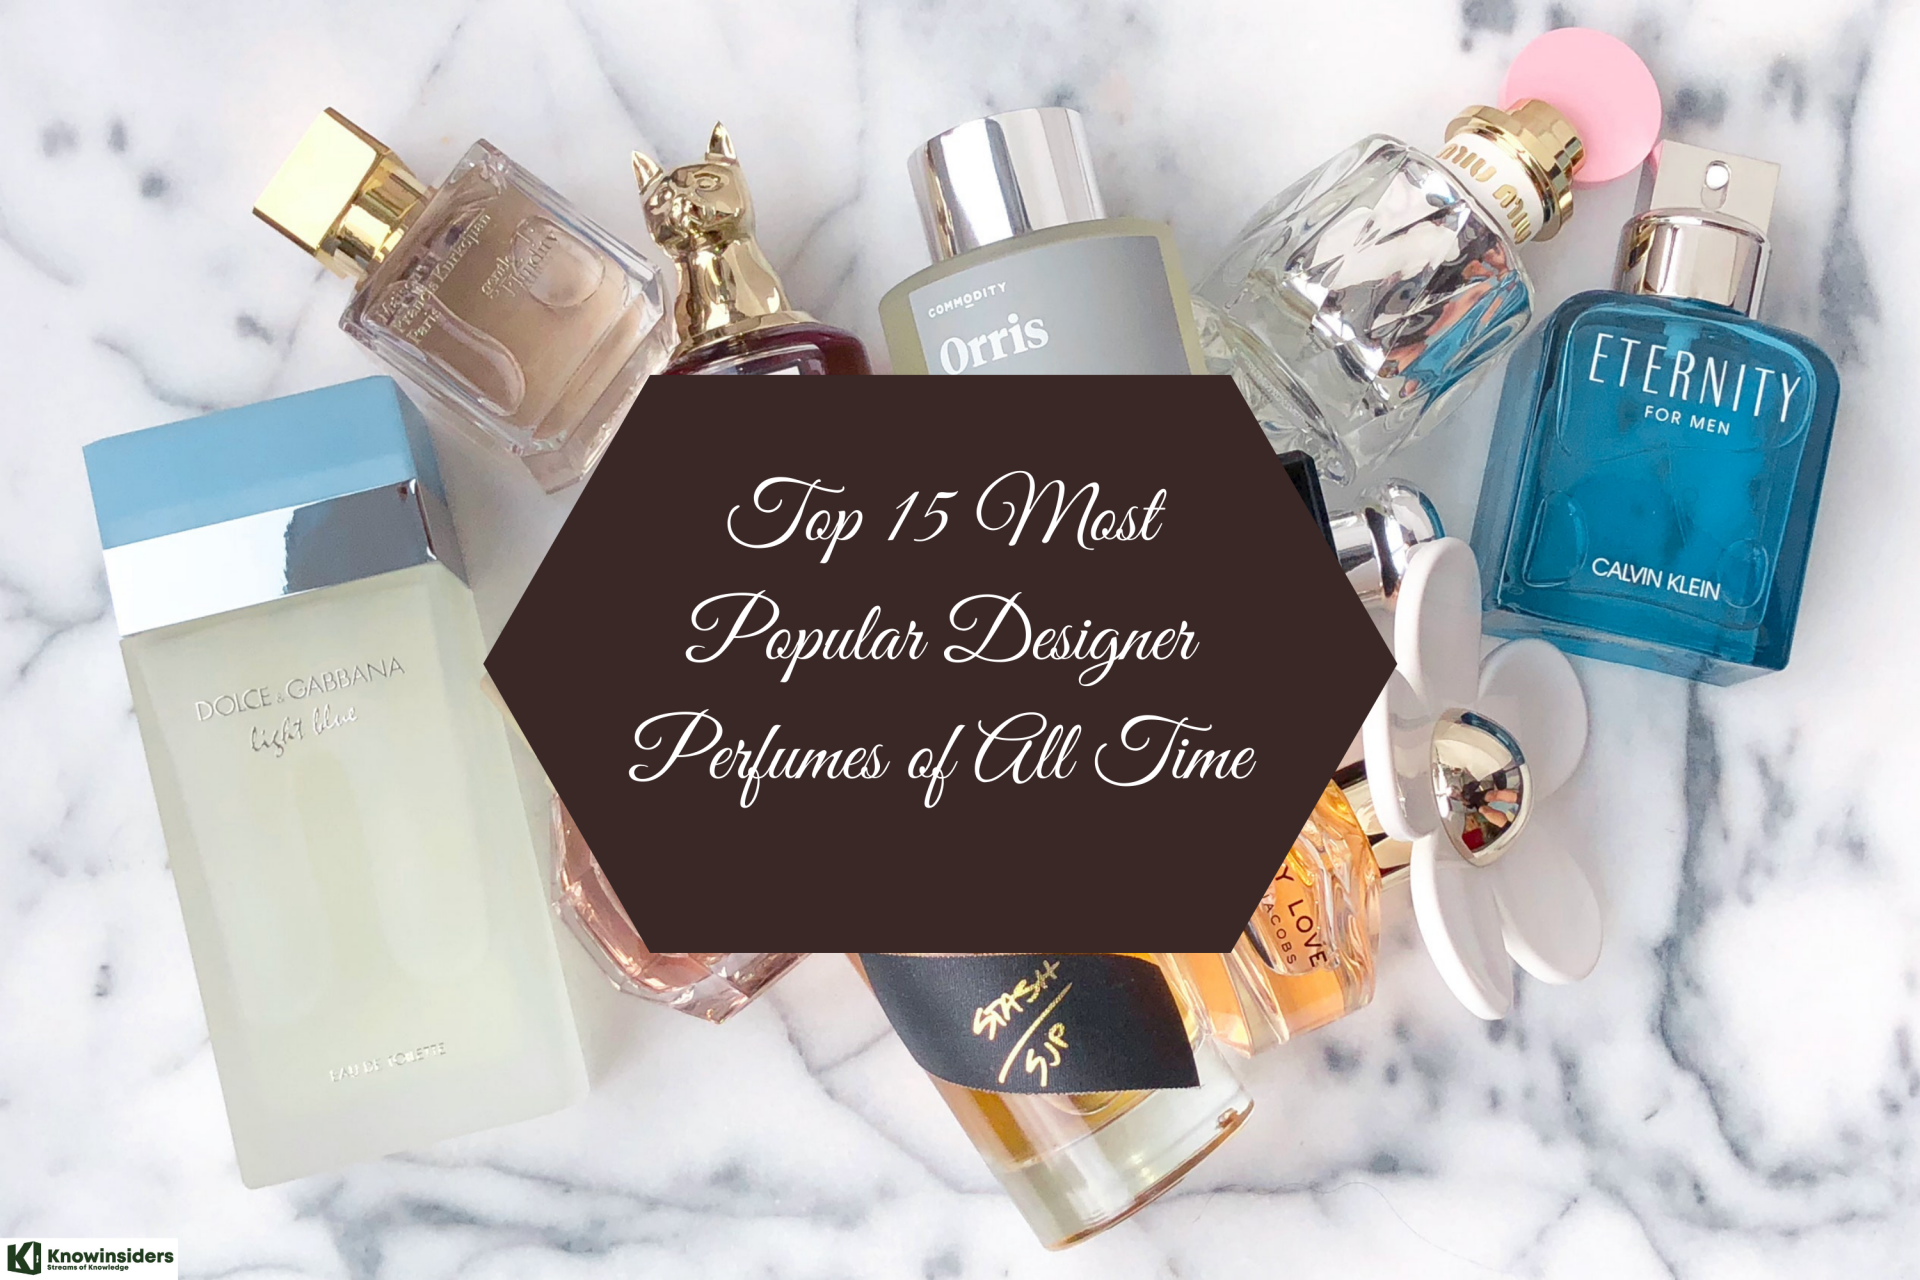 Top 15 Most Popular Designer Fragrances of All Time